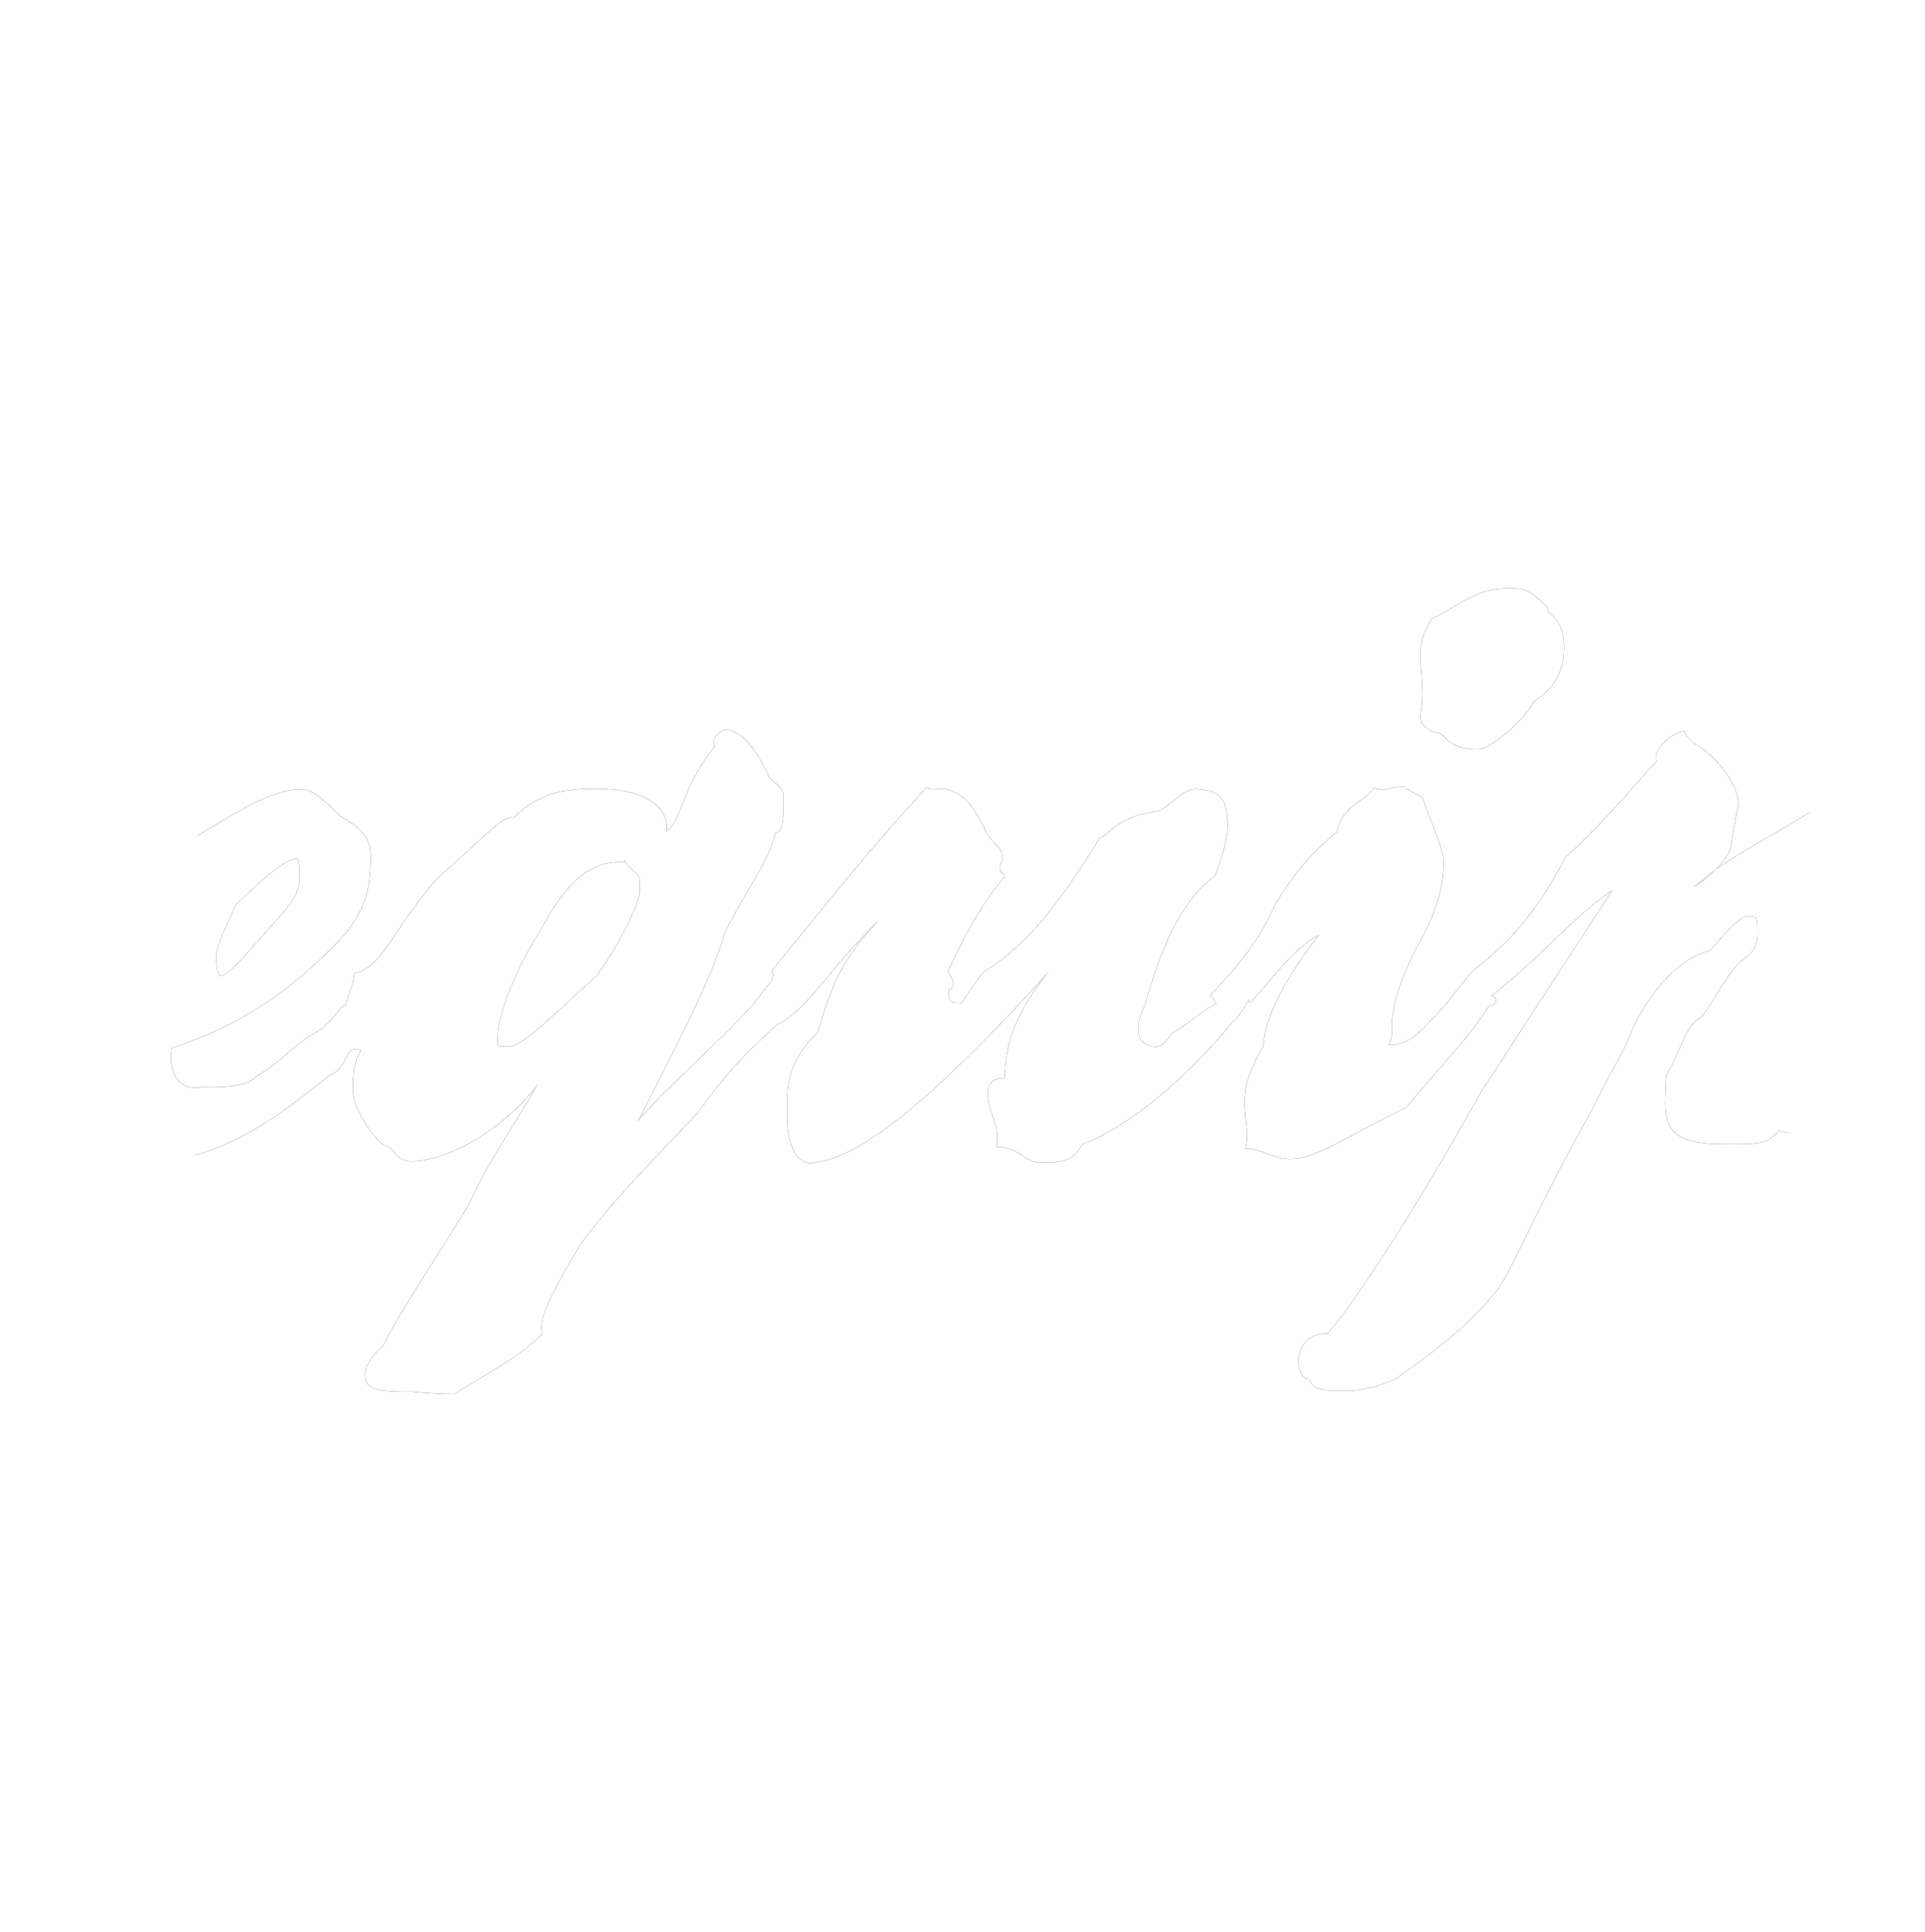 EQUIP_LOGO_Text Only_Not Cut Off.png